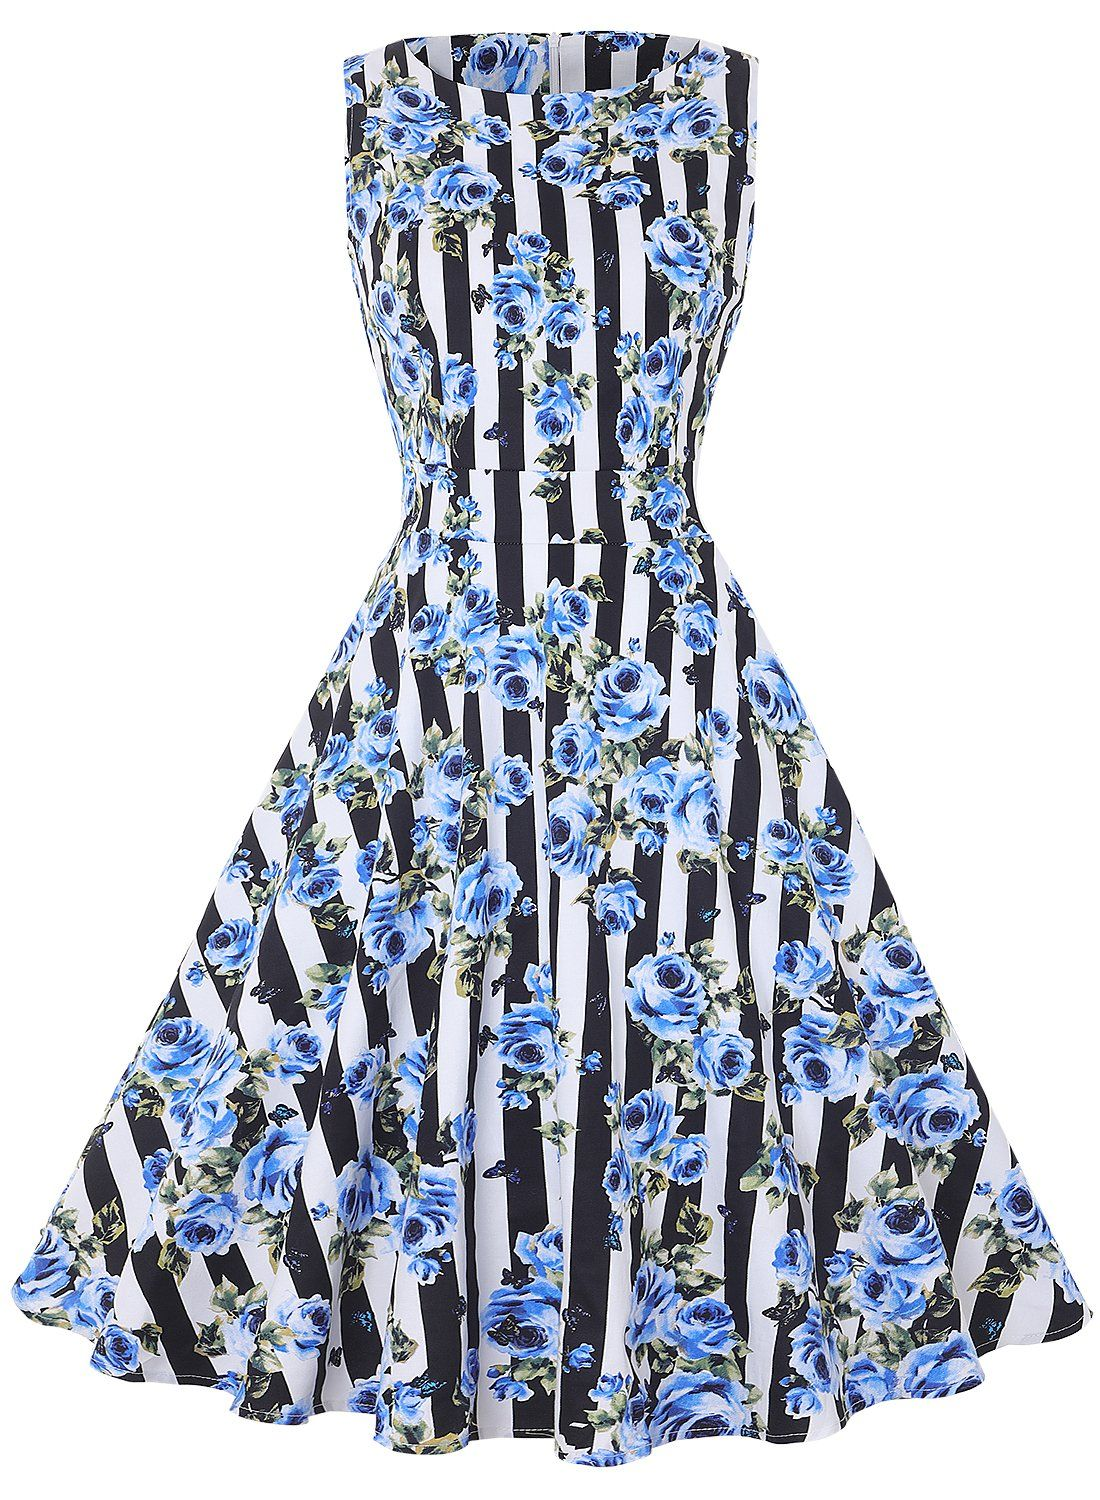 616b40aa11b8 MERRYA Womens Vintage BoatNeck Floral Sleeveless Cocktail Swing Tea Dress  Size L Black Stripes Blue *** Click image for more details. (This is an  affiliate ...